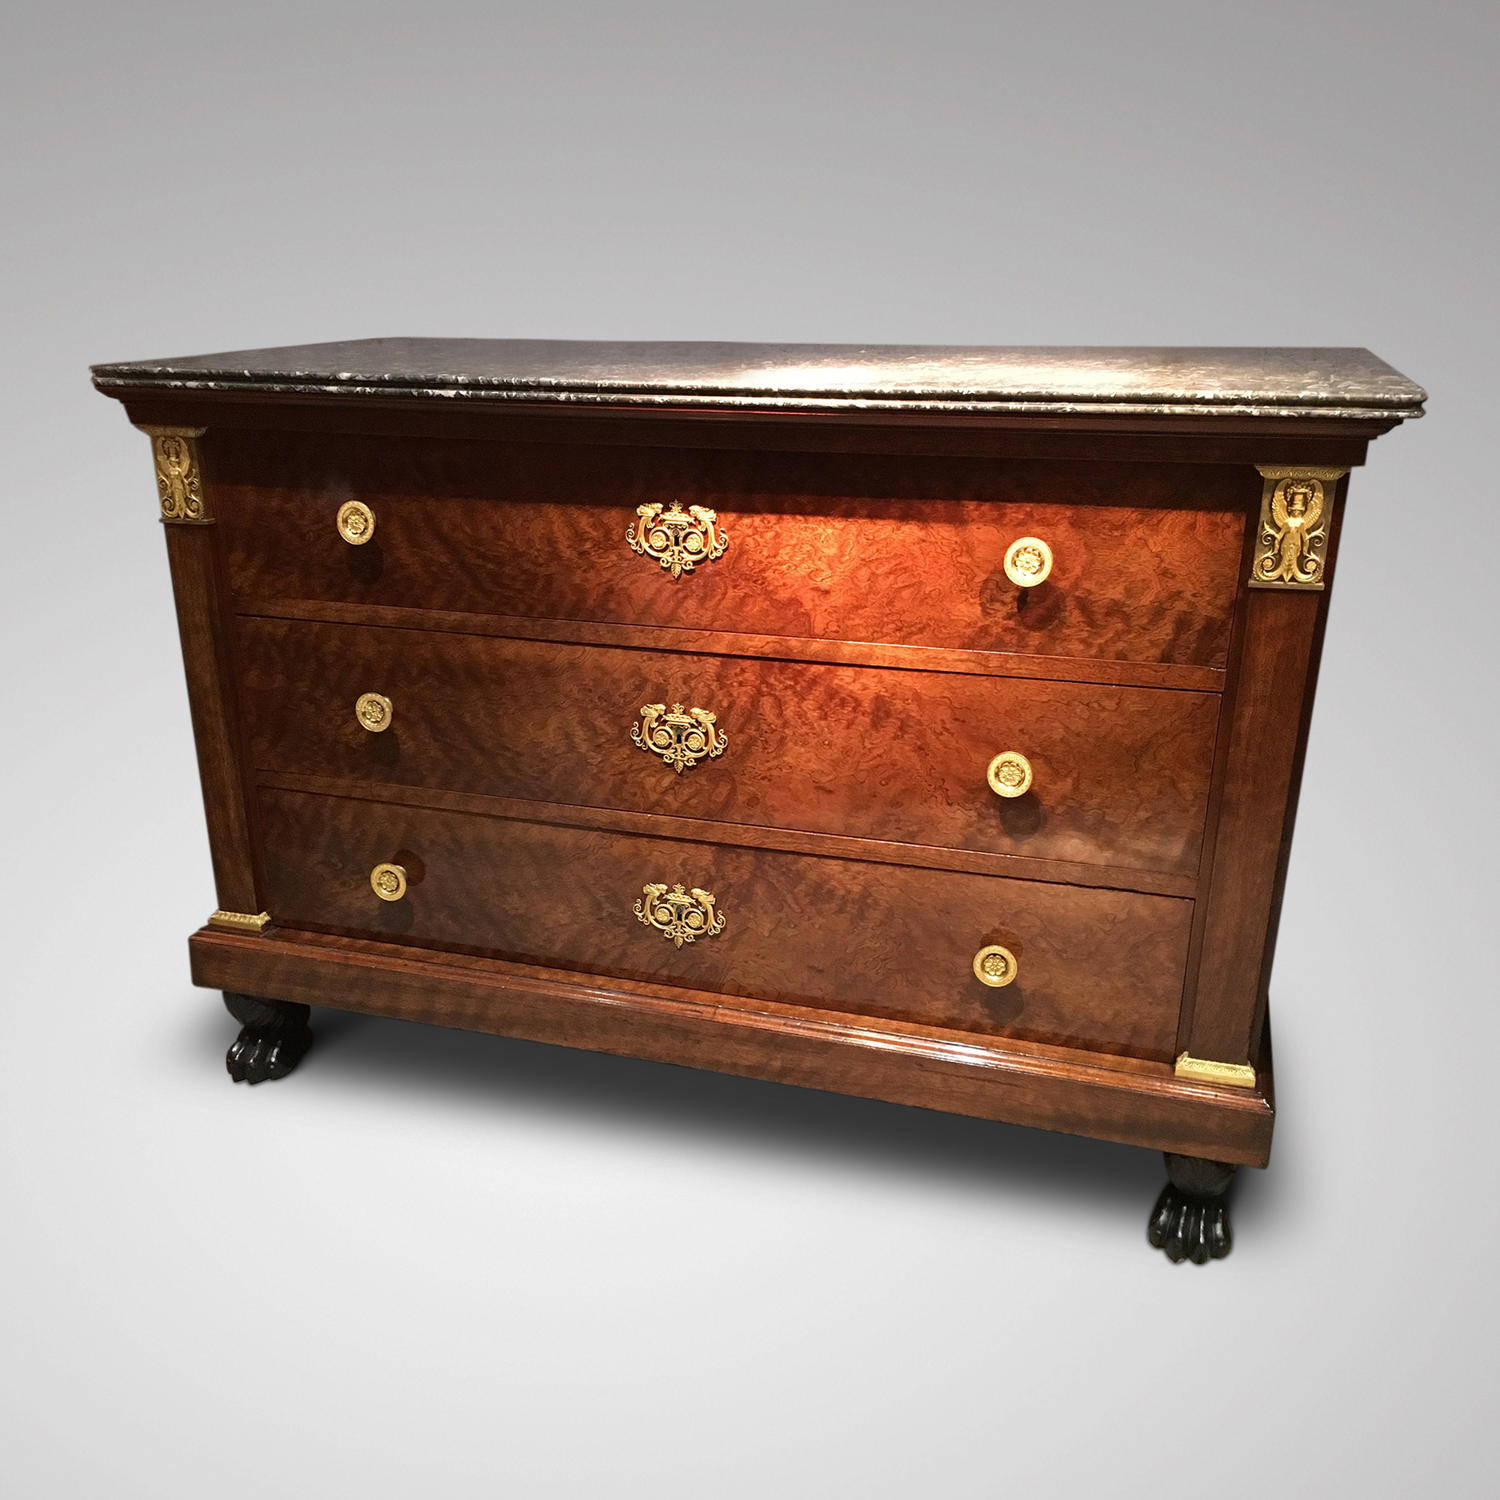 A FINE ORMOLOU MOUNTED COMMODE